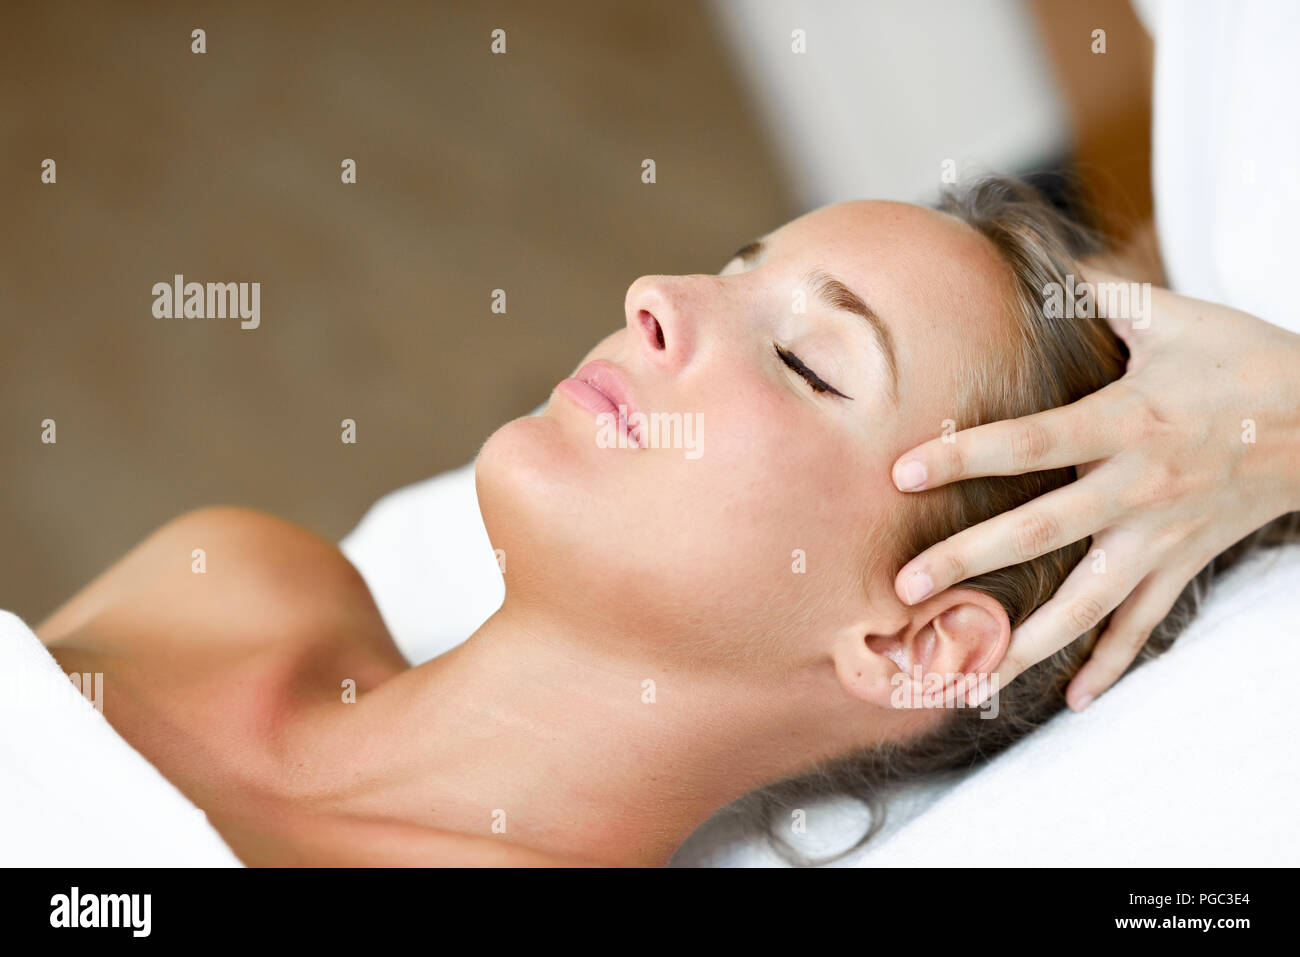 Young blond woman receiving a head massage in a spa center with eyes closed. Female patient is receiving treatment by professional therapist. - Stock Image